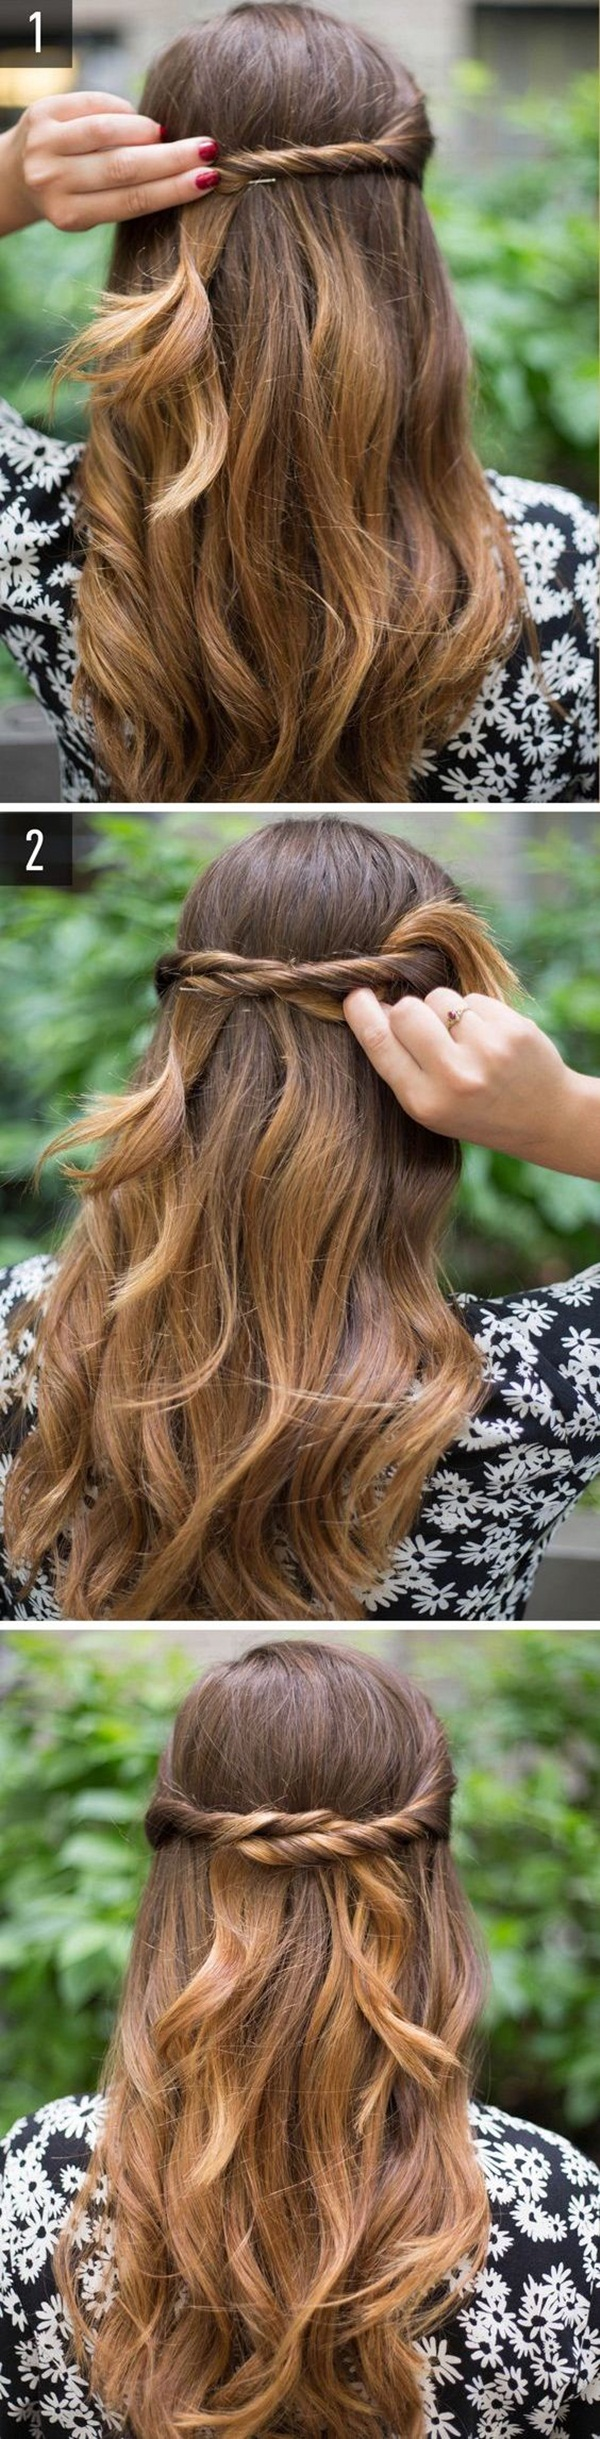 Easy Hairstyles For School (15)